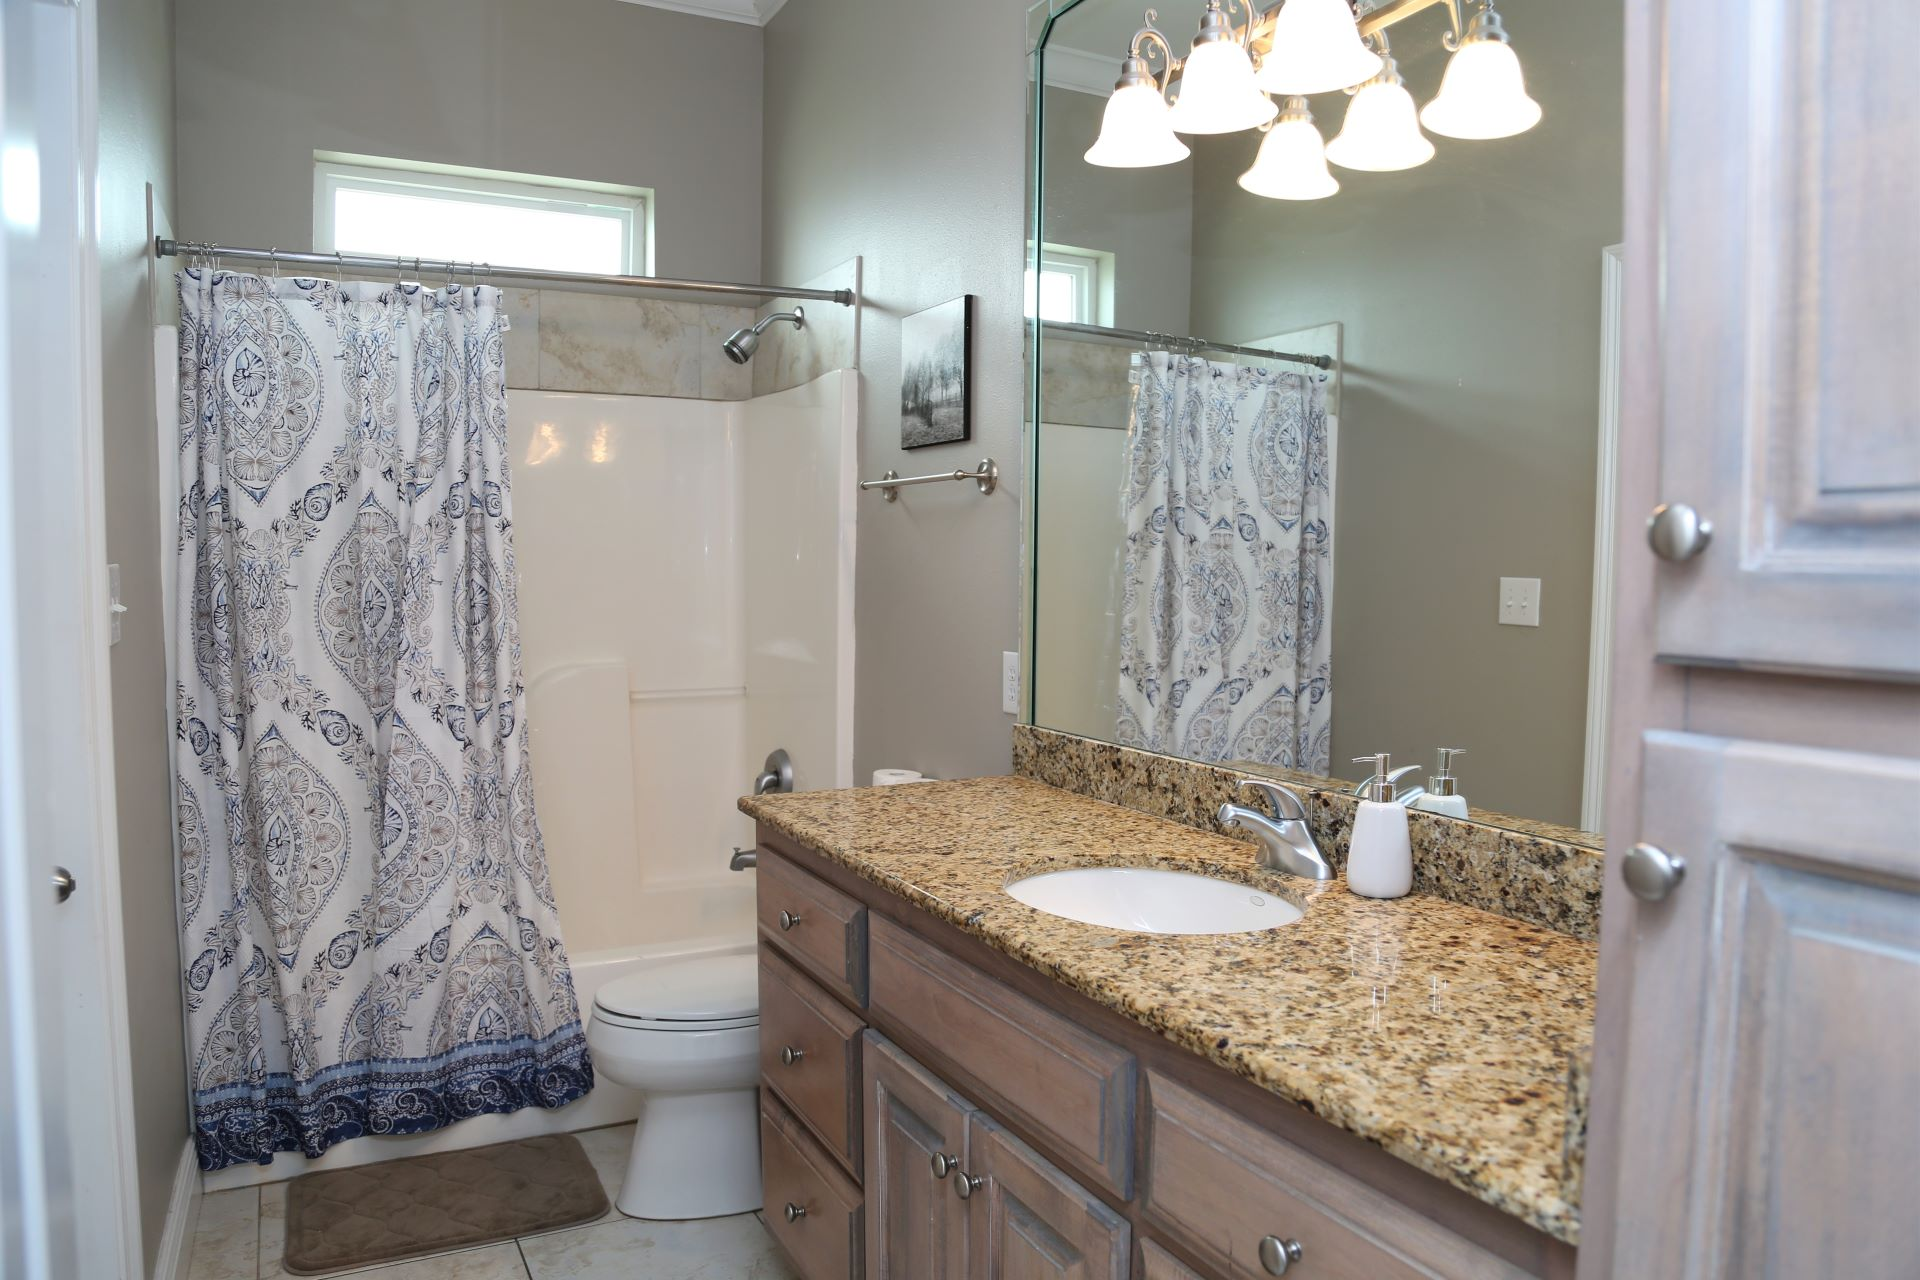 The hall bathroom with shower/tub combo, large vanity, and c